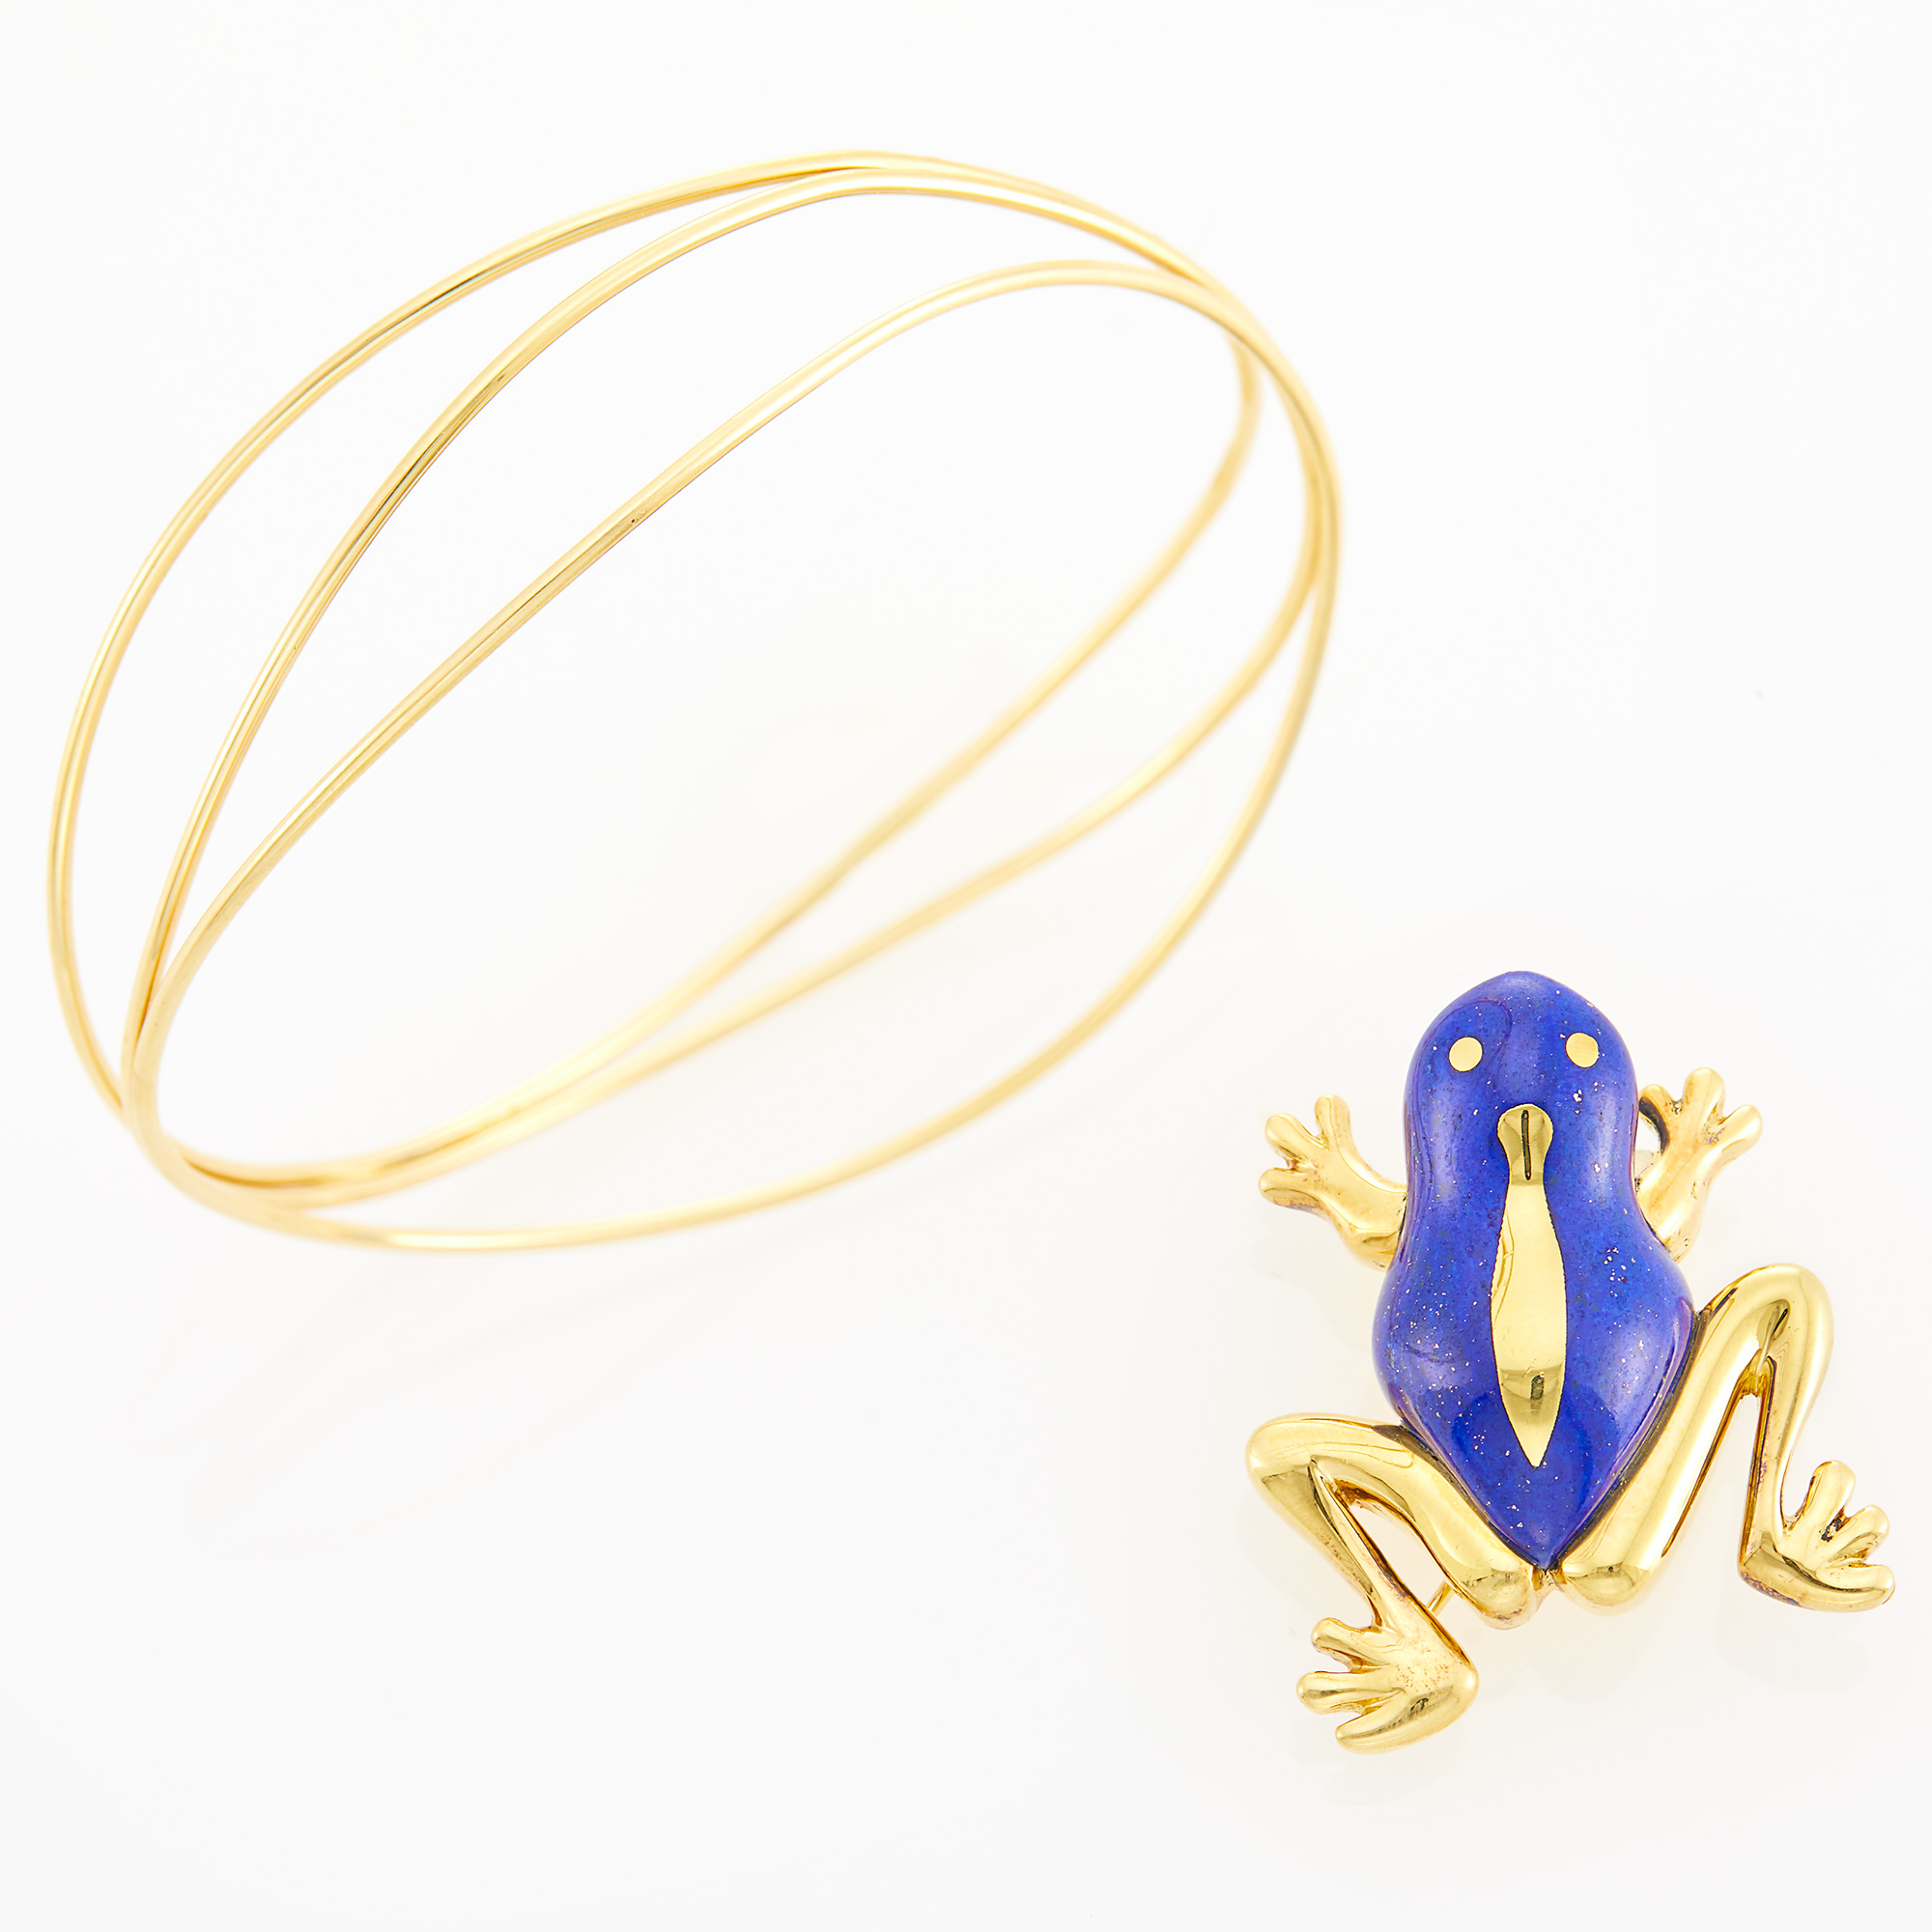 Lot image - Tiffany & Co., Elsa Peretti Gold Bangle Bracelet and Tiffany & Co. Gold and Lapis Frog Pin